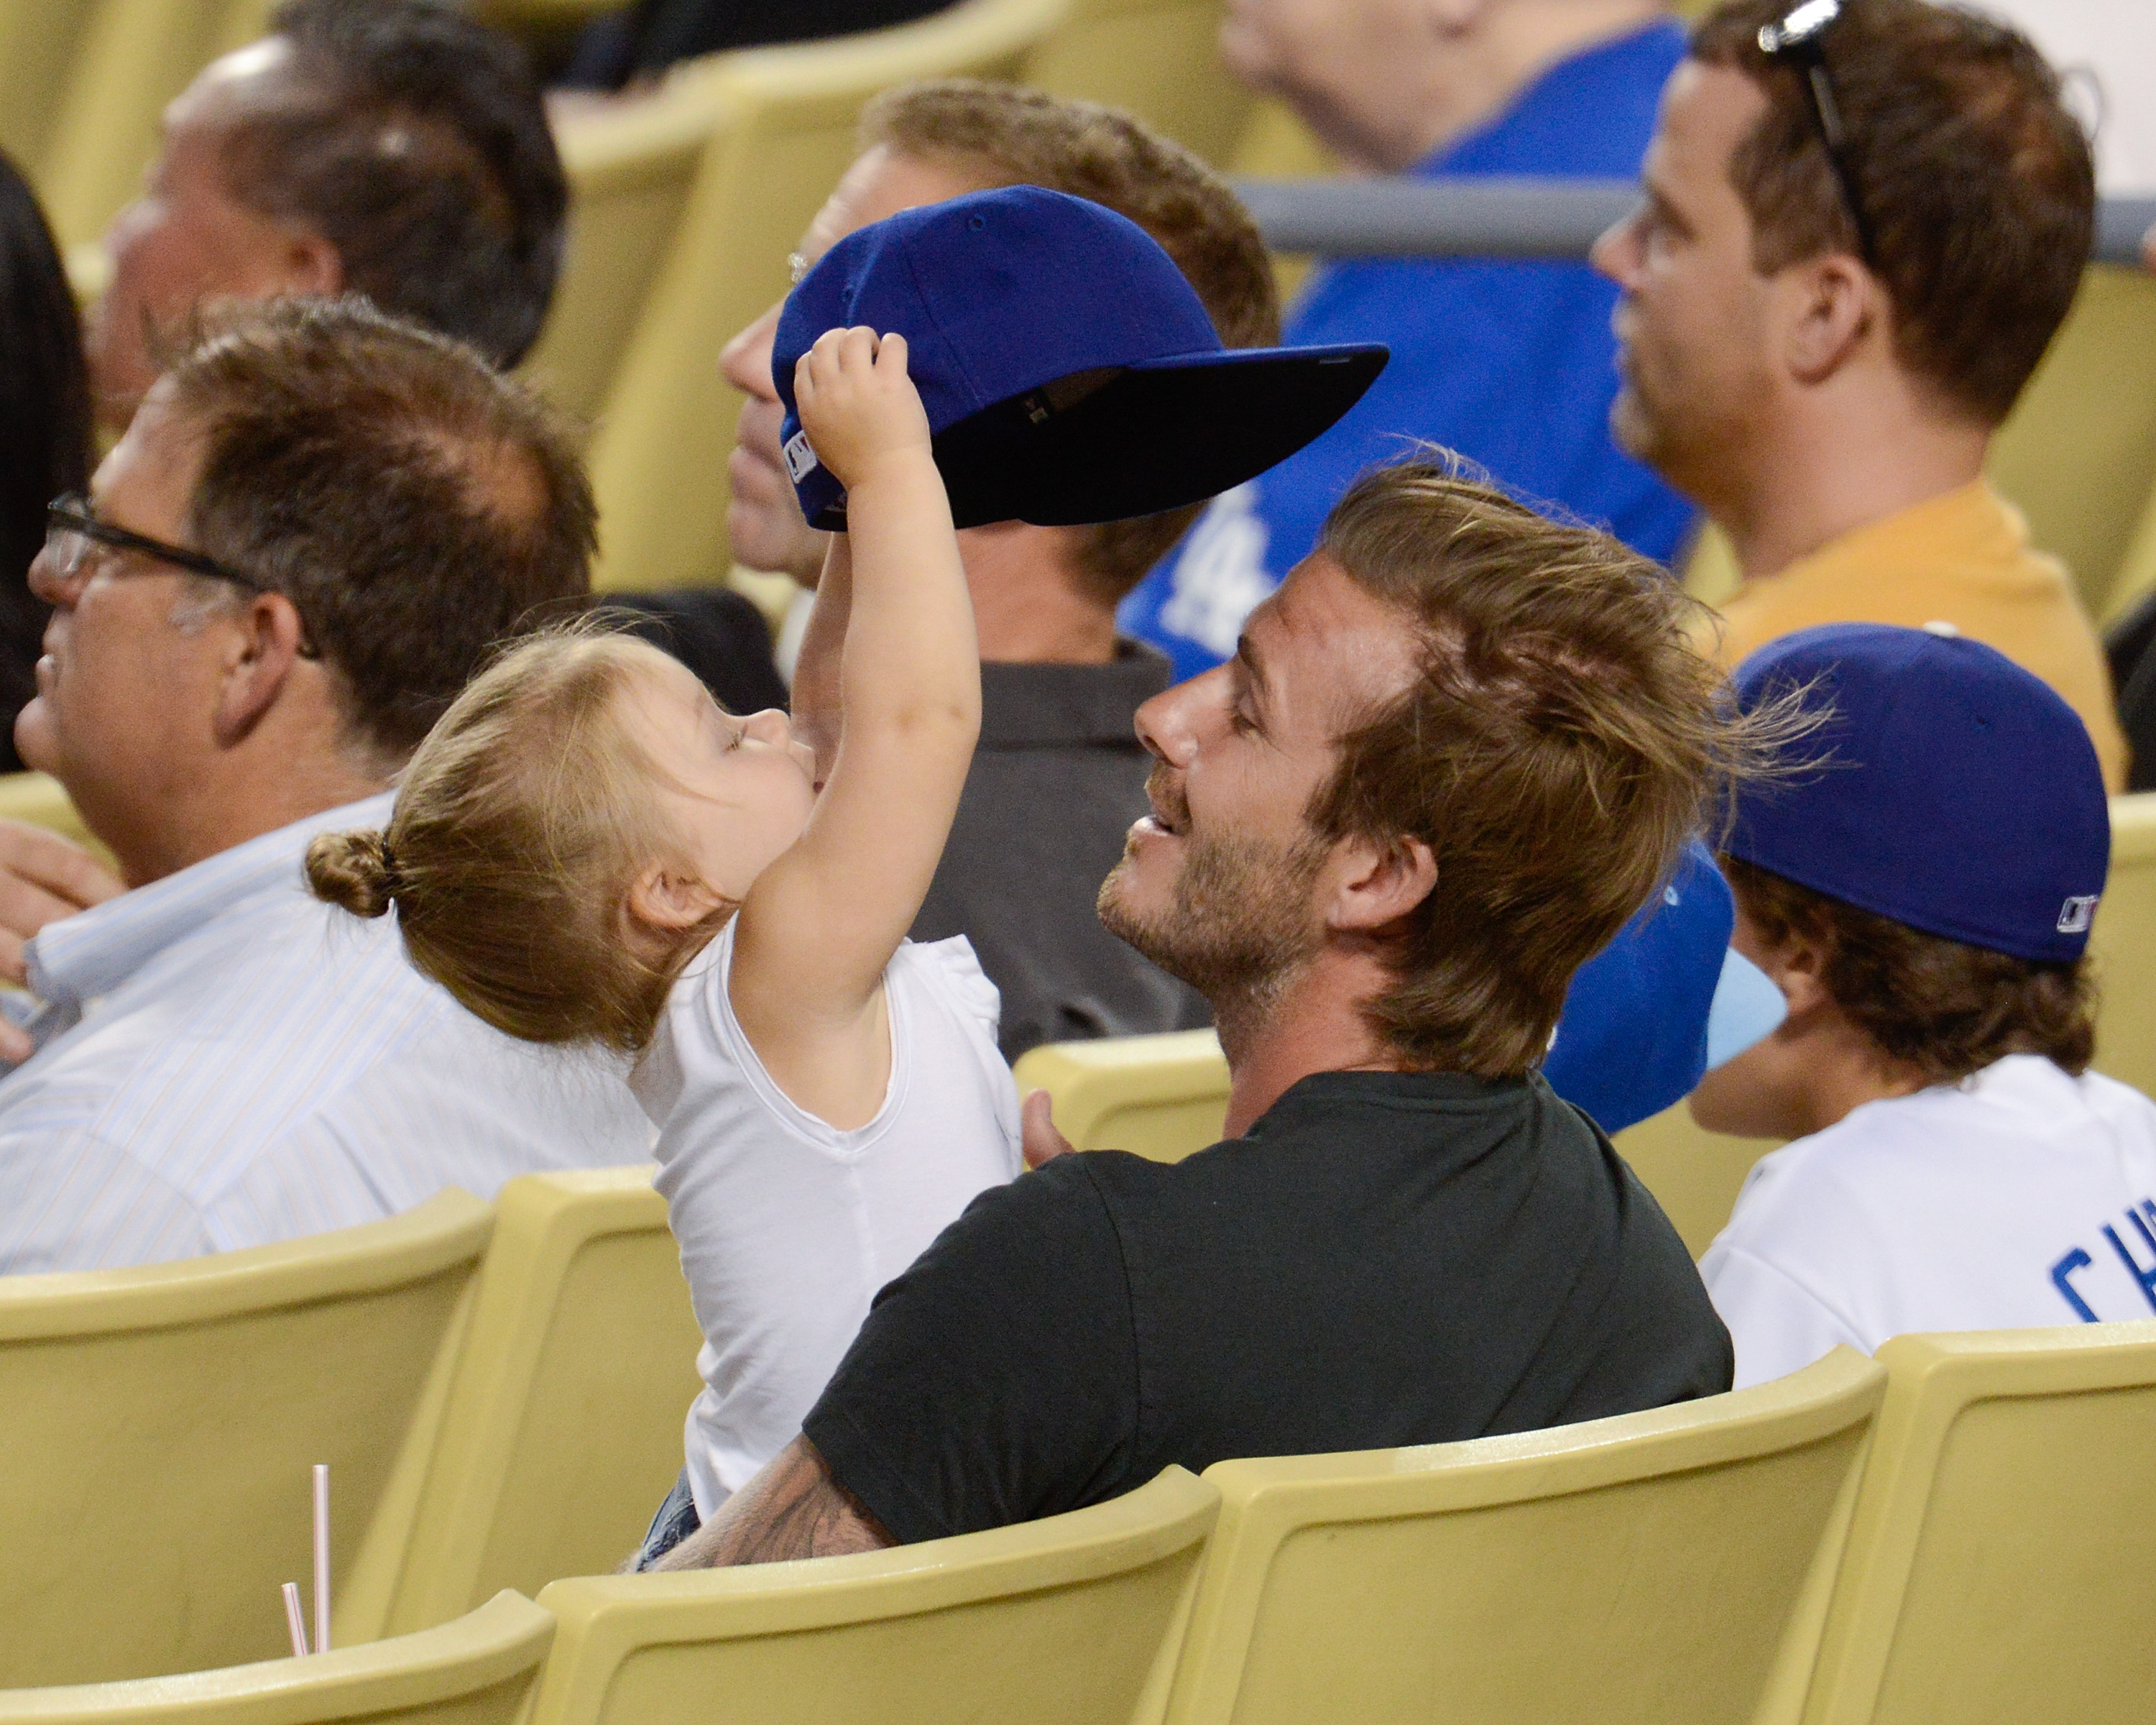 LOS ANGELES, CA - AUGUST 27: David Beckham (R) and daughter Harper Beckham attend a baseball game between the Chicago Cubs and the Los Angeles Dodgers at Dodger Stadium on August 27, 2013 in Los Angeles, California. (Photo by Noel Vasquez/Getty Images)